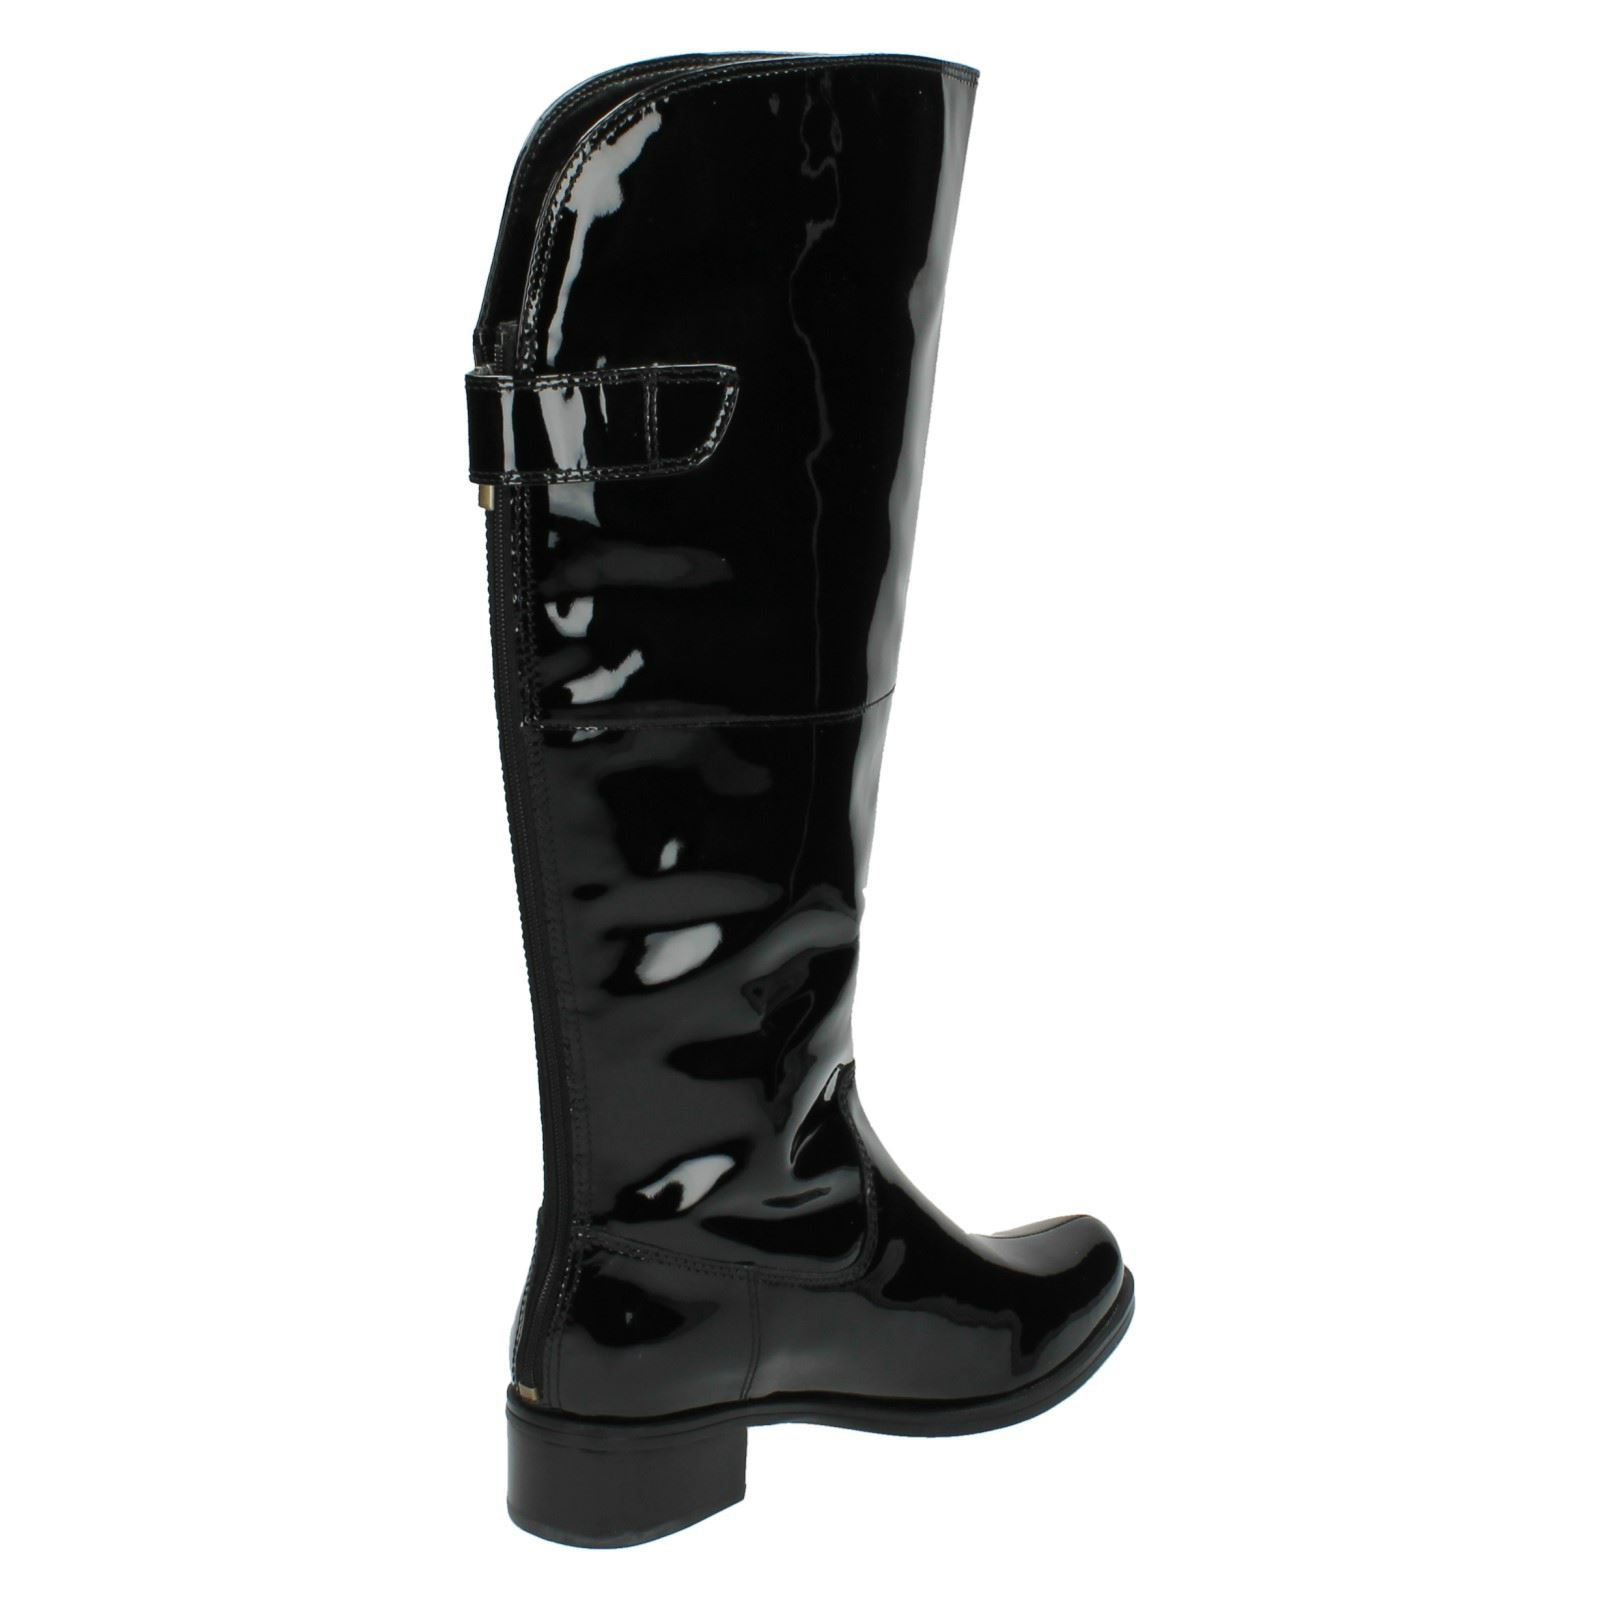 582c3f98d72 Ladies Clarks Knee High Boots Style - Kildale Drama